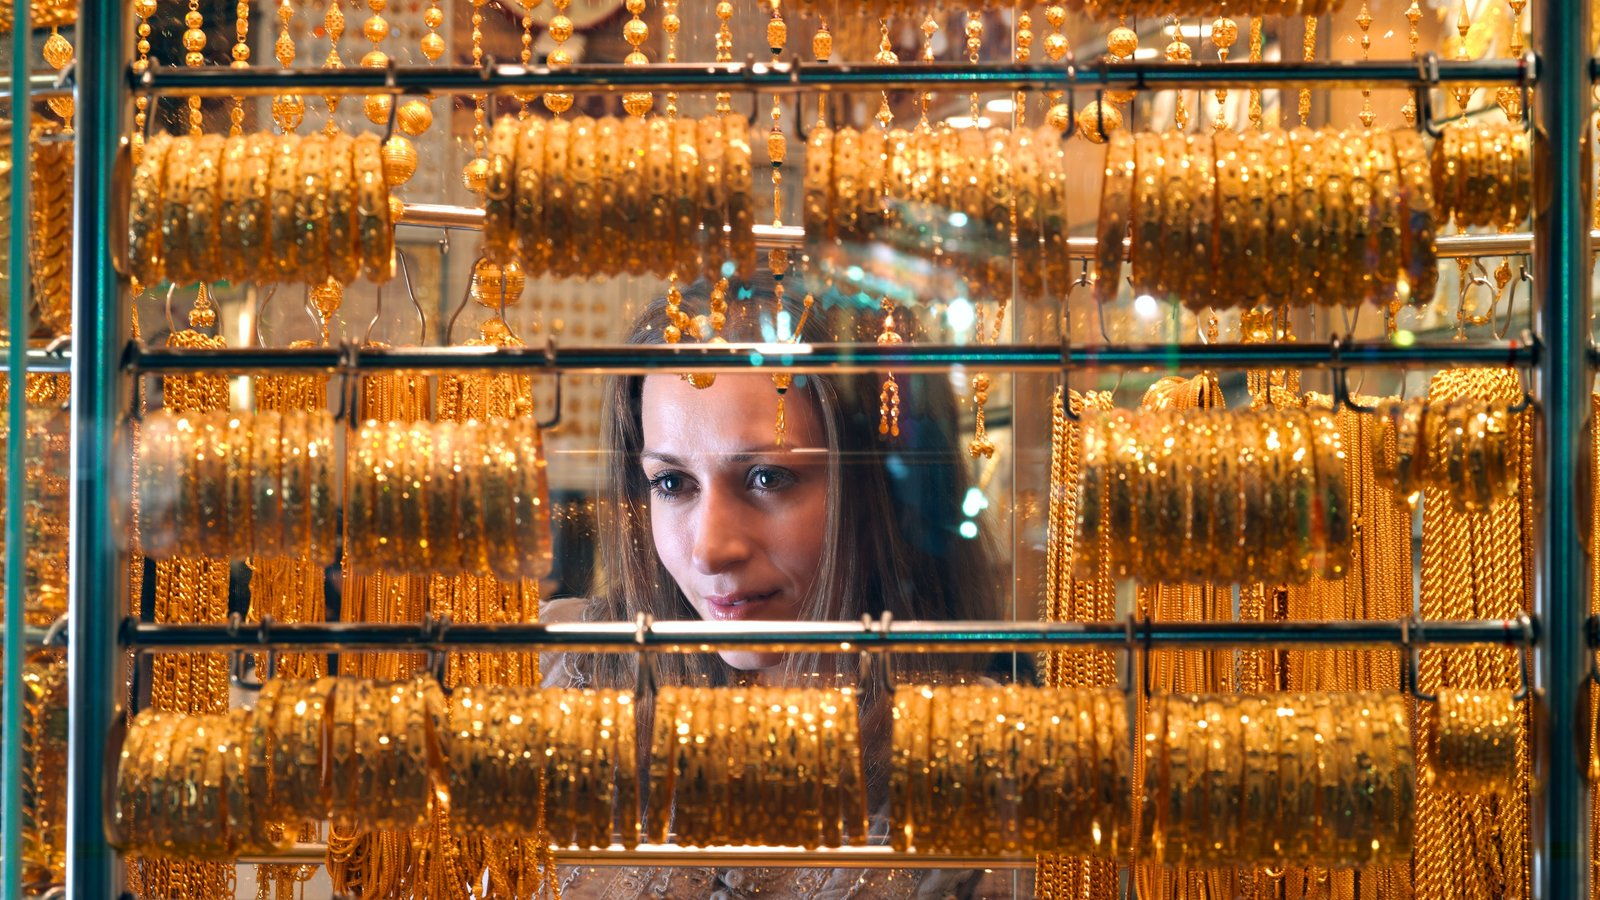 Gold Souk showing shopping and interior views as well as an individual femail